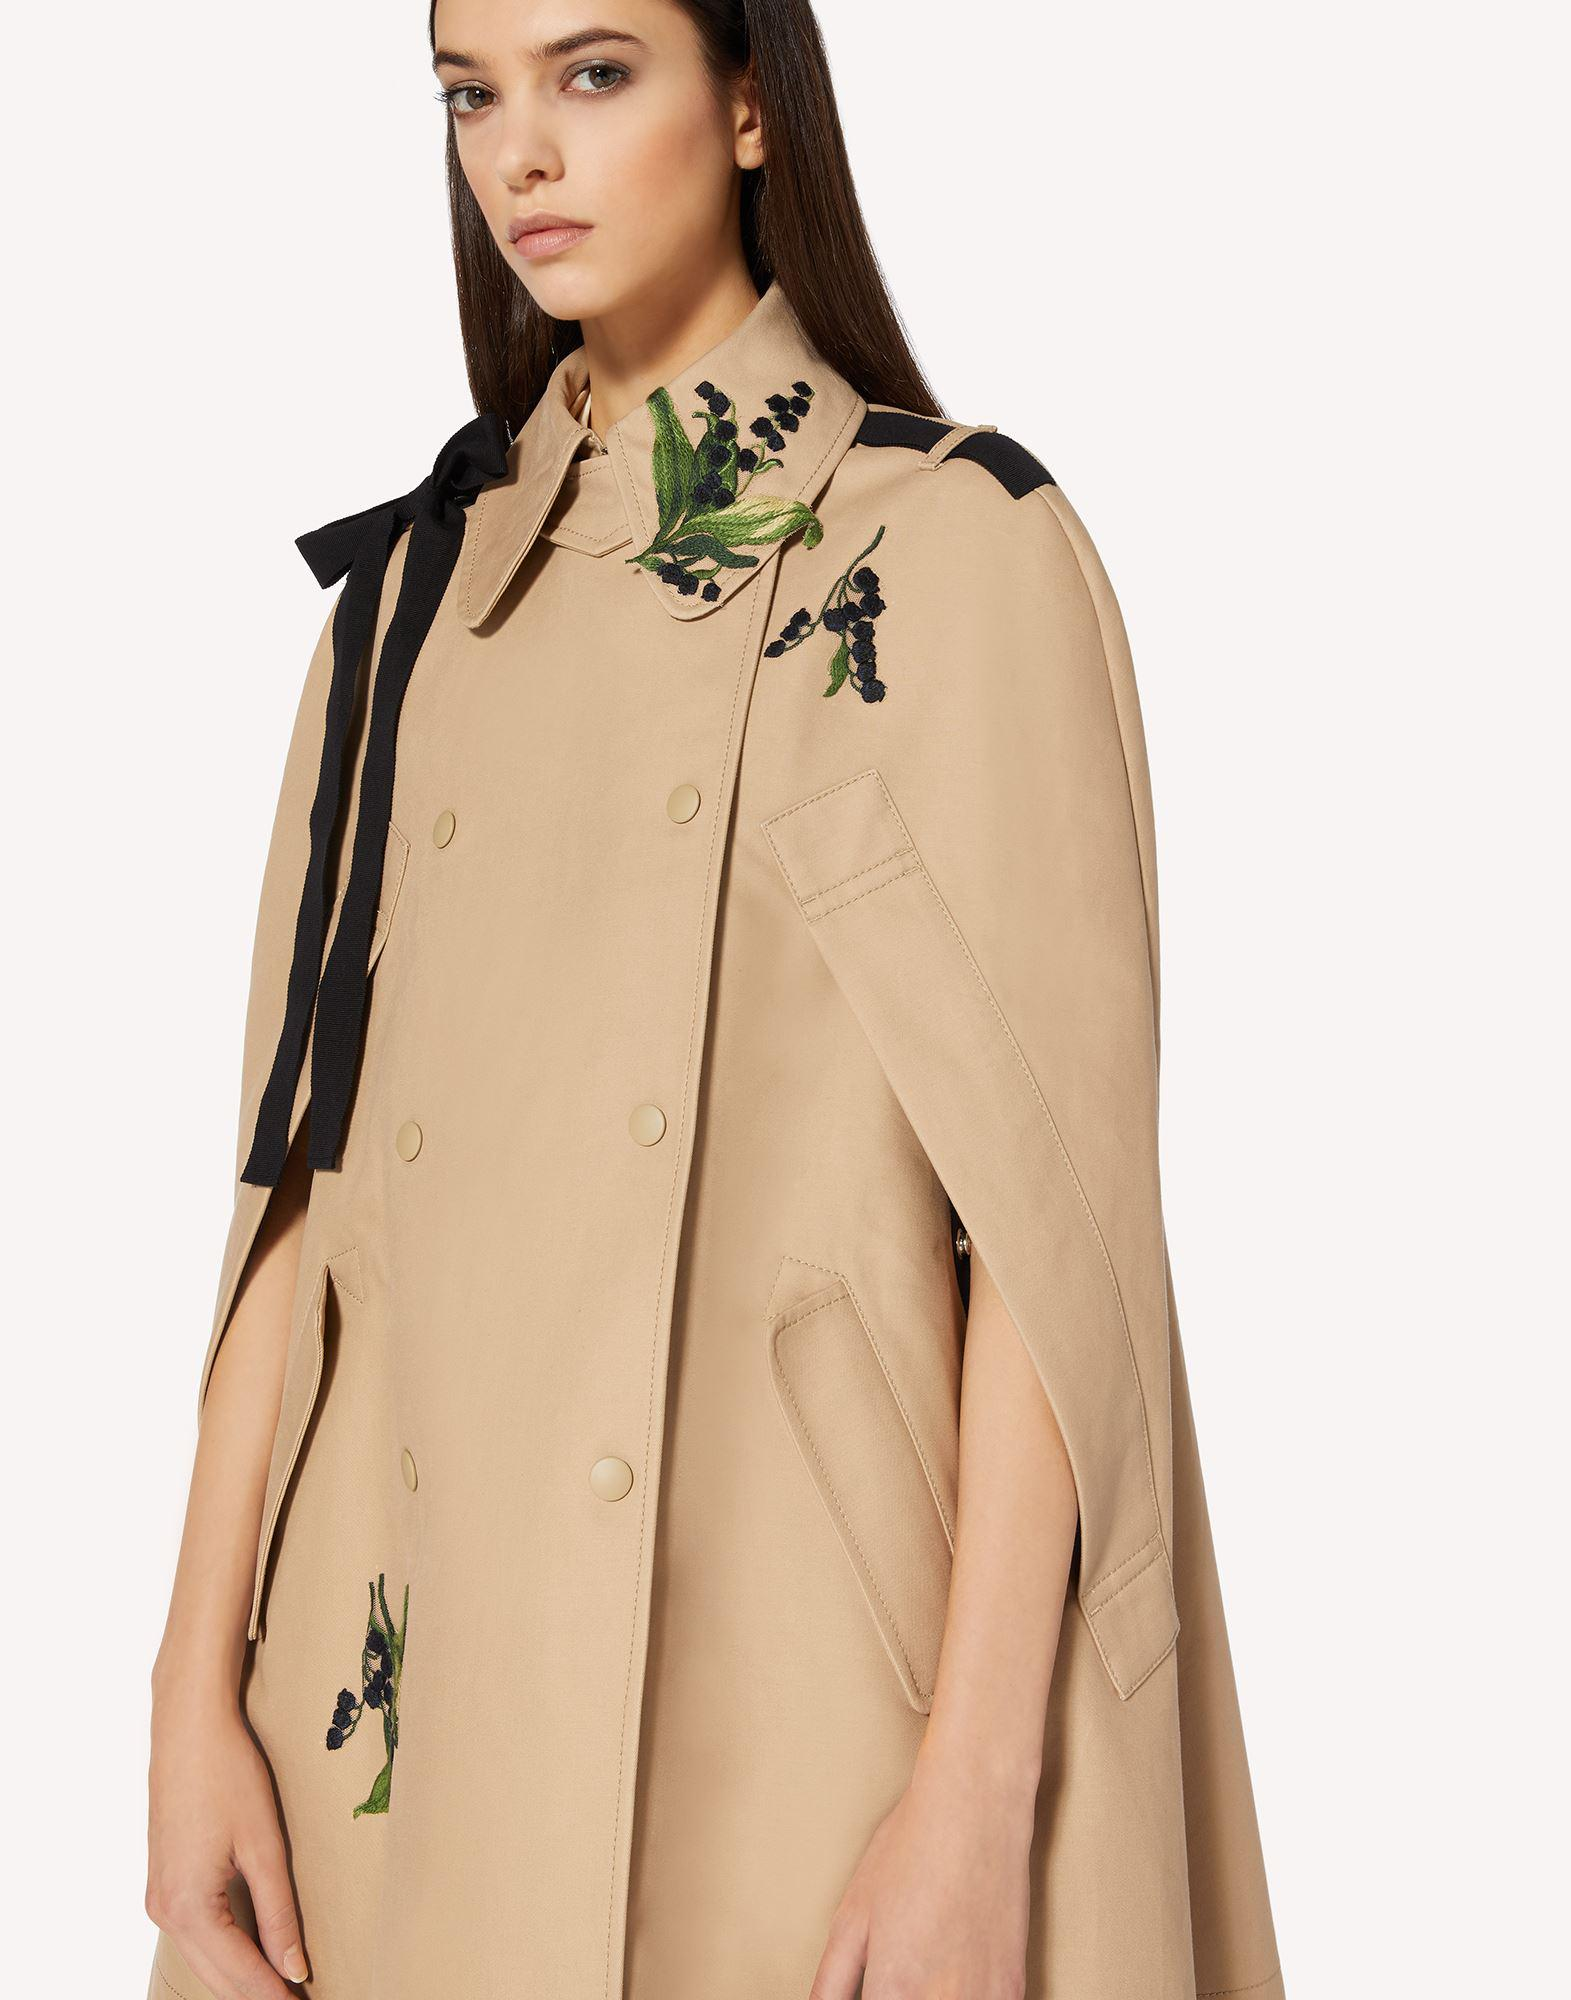 MAY LILY EMBROIDERED TRENCH CAPE WITH BOW DETAIL 3